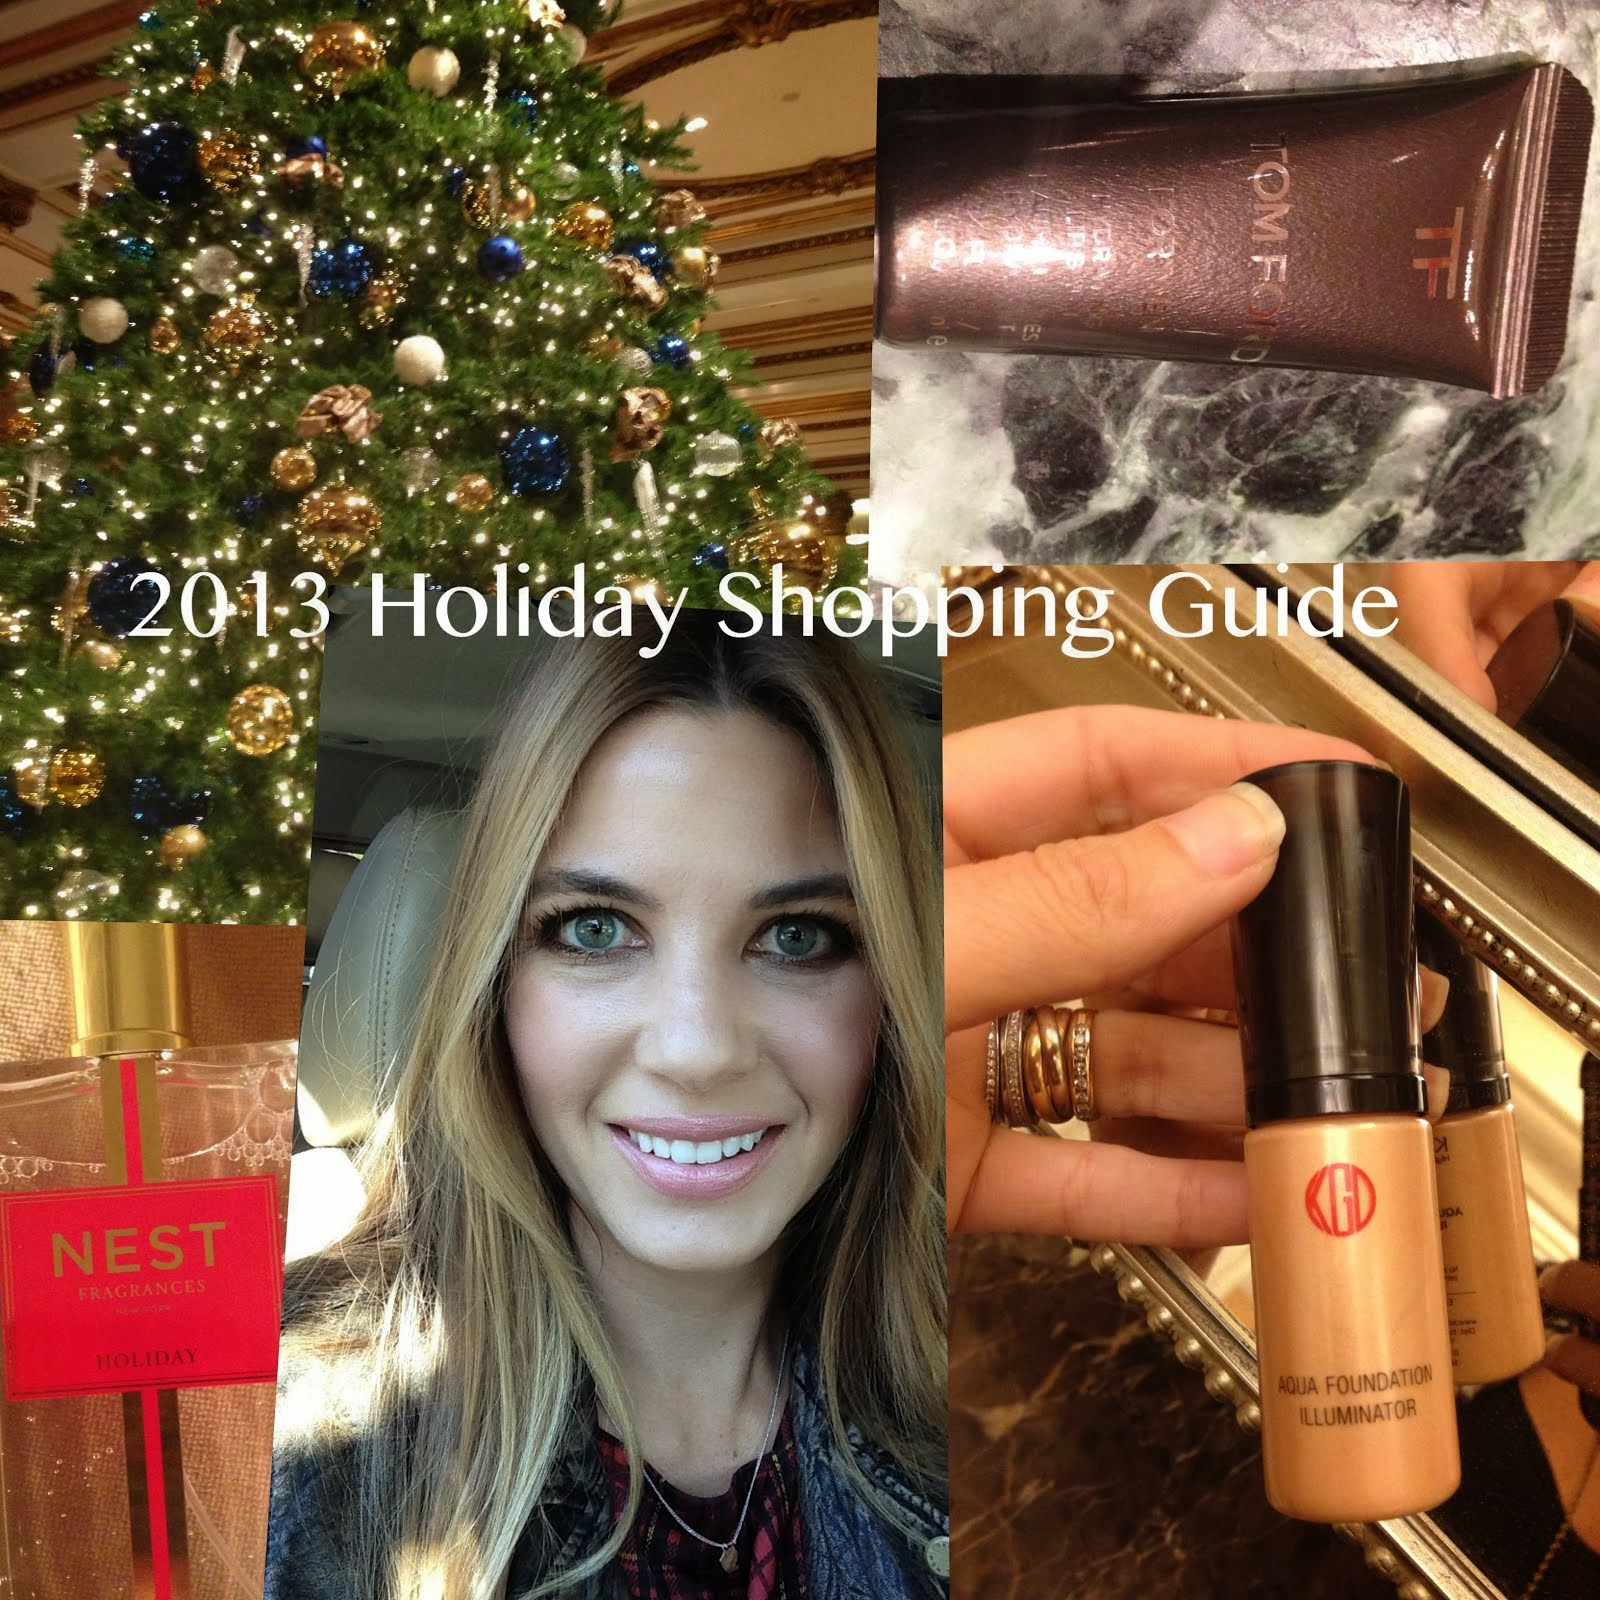 Holiday 2013 Shopping Guide